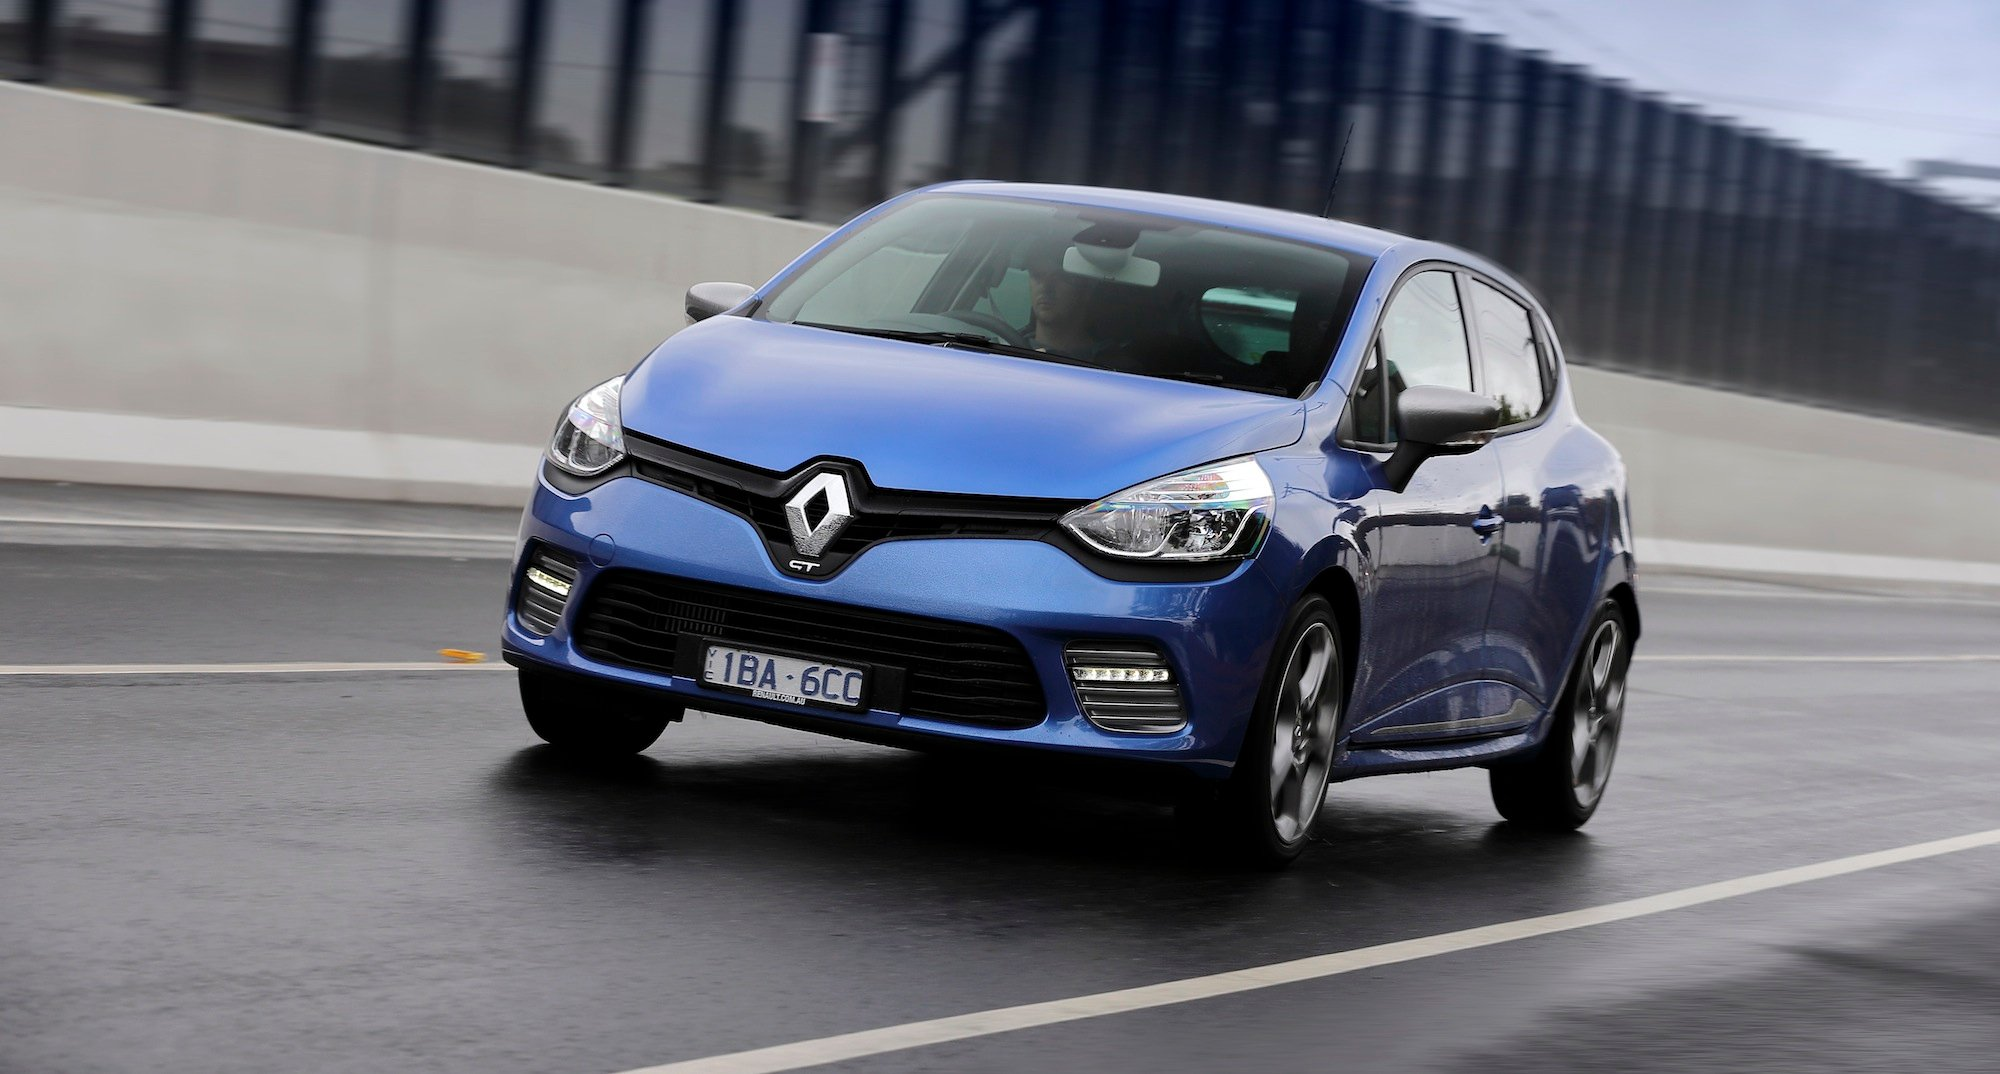 renault clio gt pricing and specifications photos caradvice. Black Bedroom Furniture Sets. Home Design Ideas